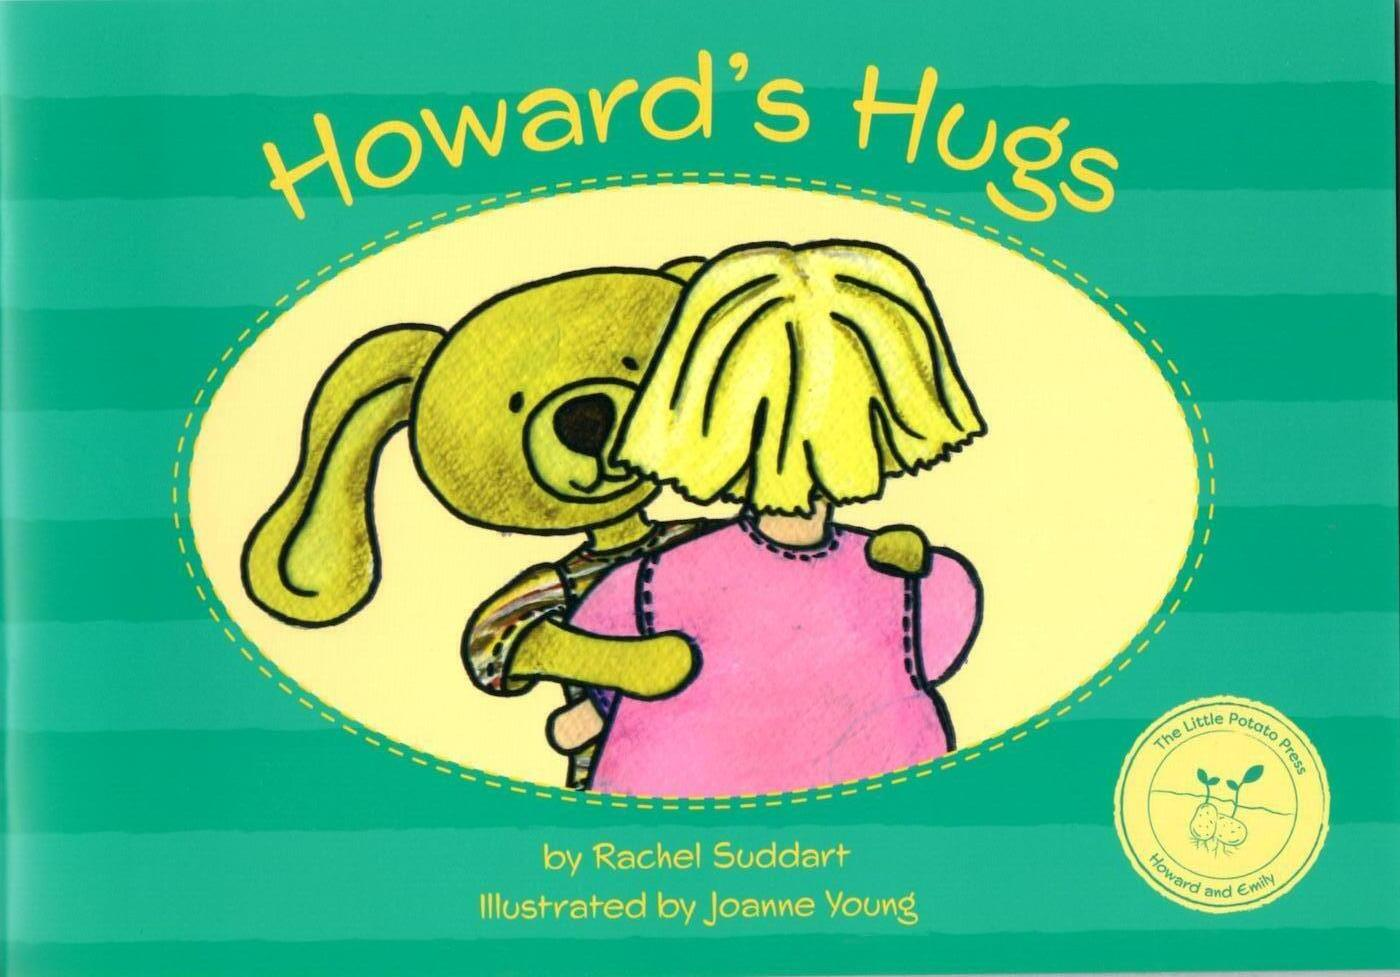 Howard's Hugs